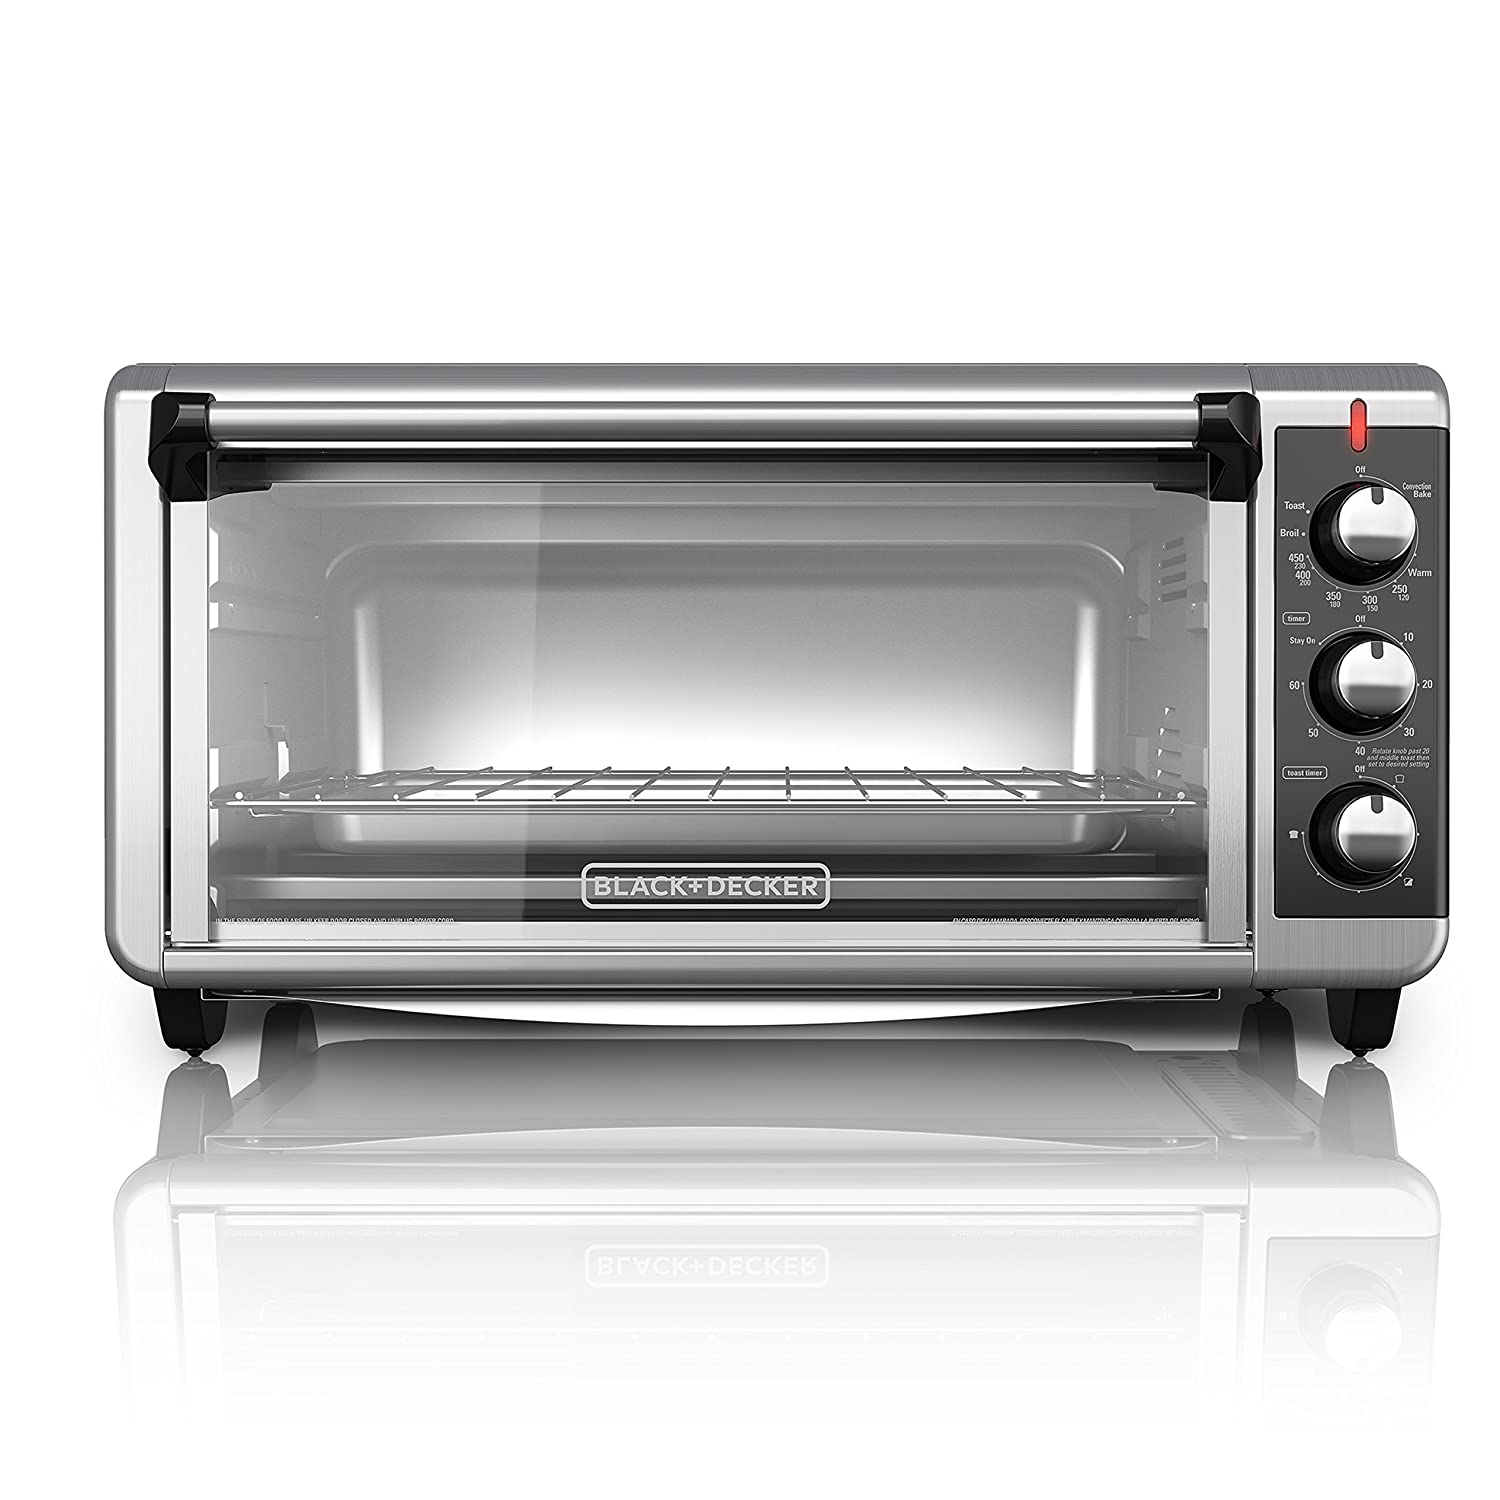 toaster convection ovens sale oven and on target extra large black decker oster